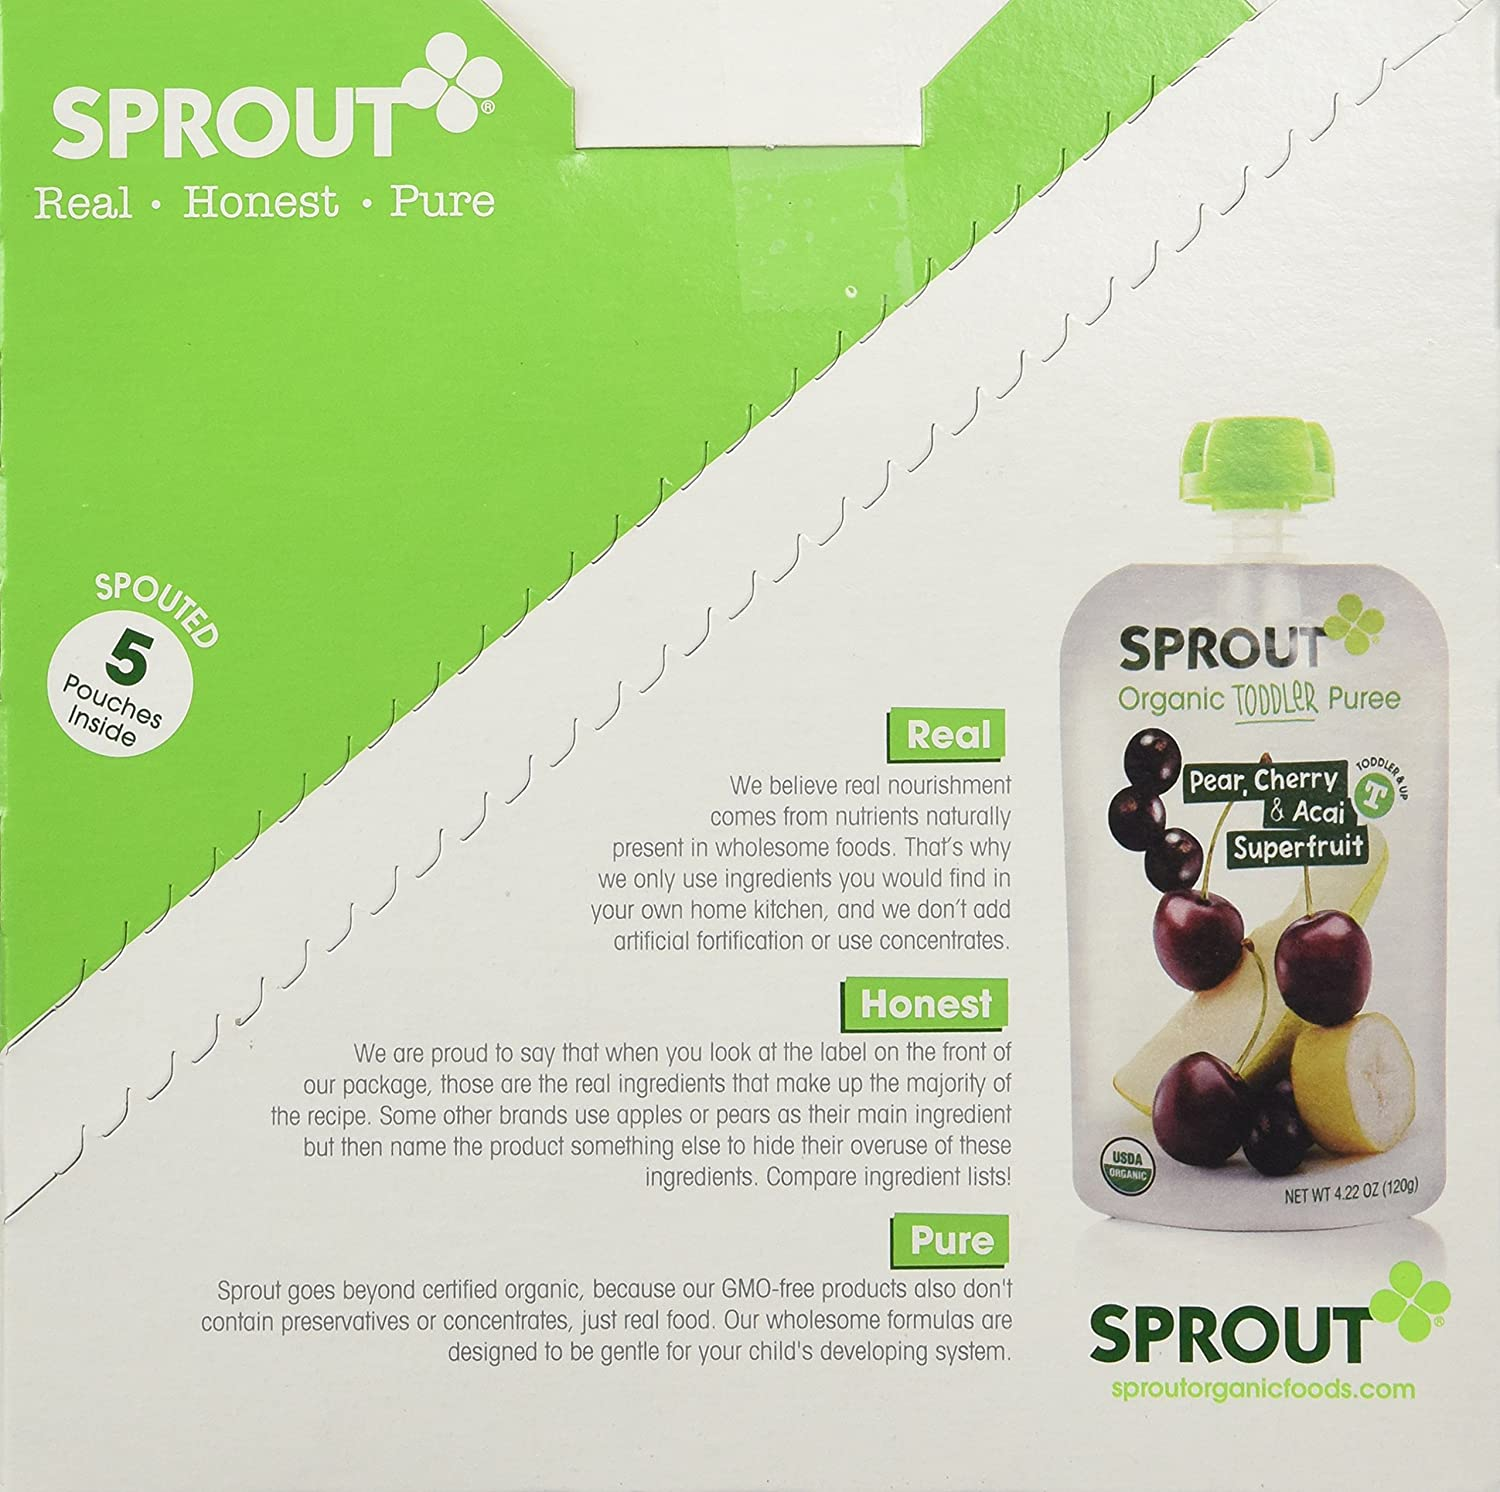 Sprout Toddler Puree, Pear, Cherry & Acai Super Fruit, 4.22 oz(Pack of 5)